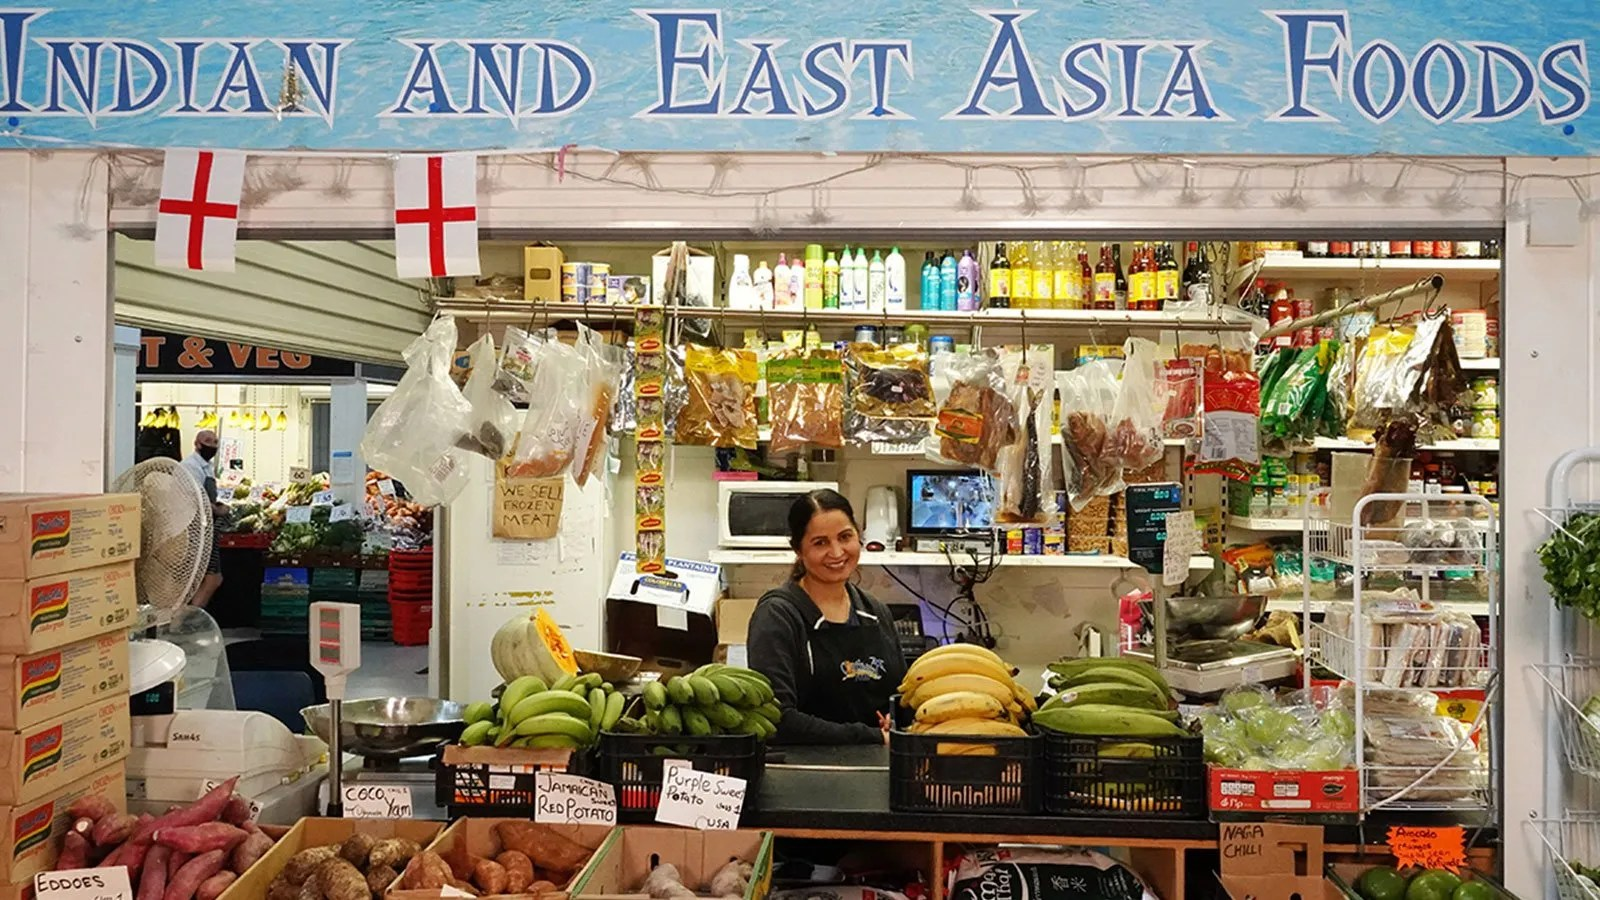 East Asian Food Stall in The Moor Market